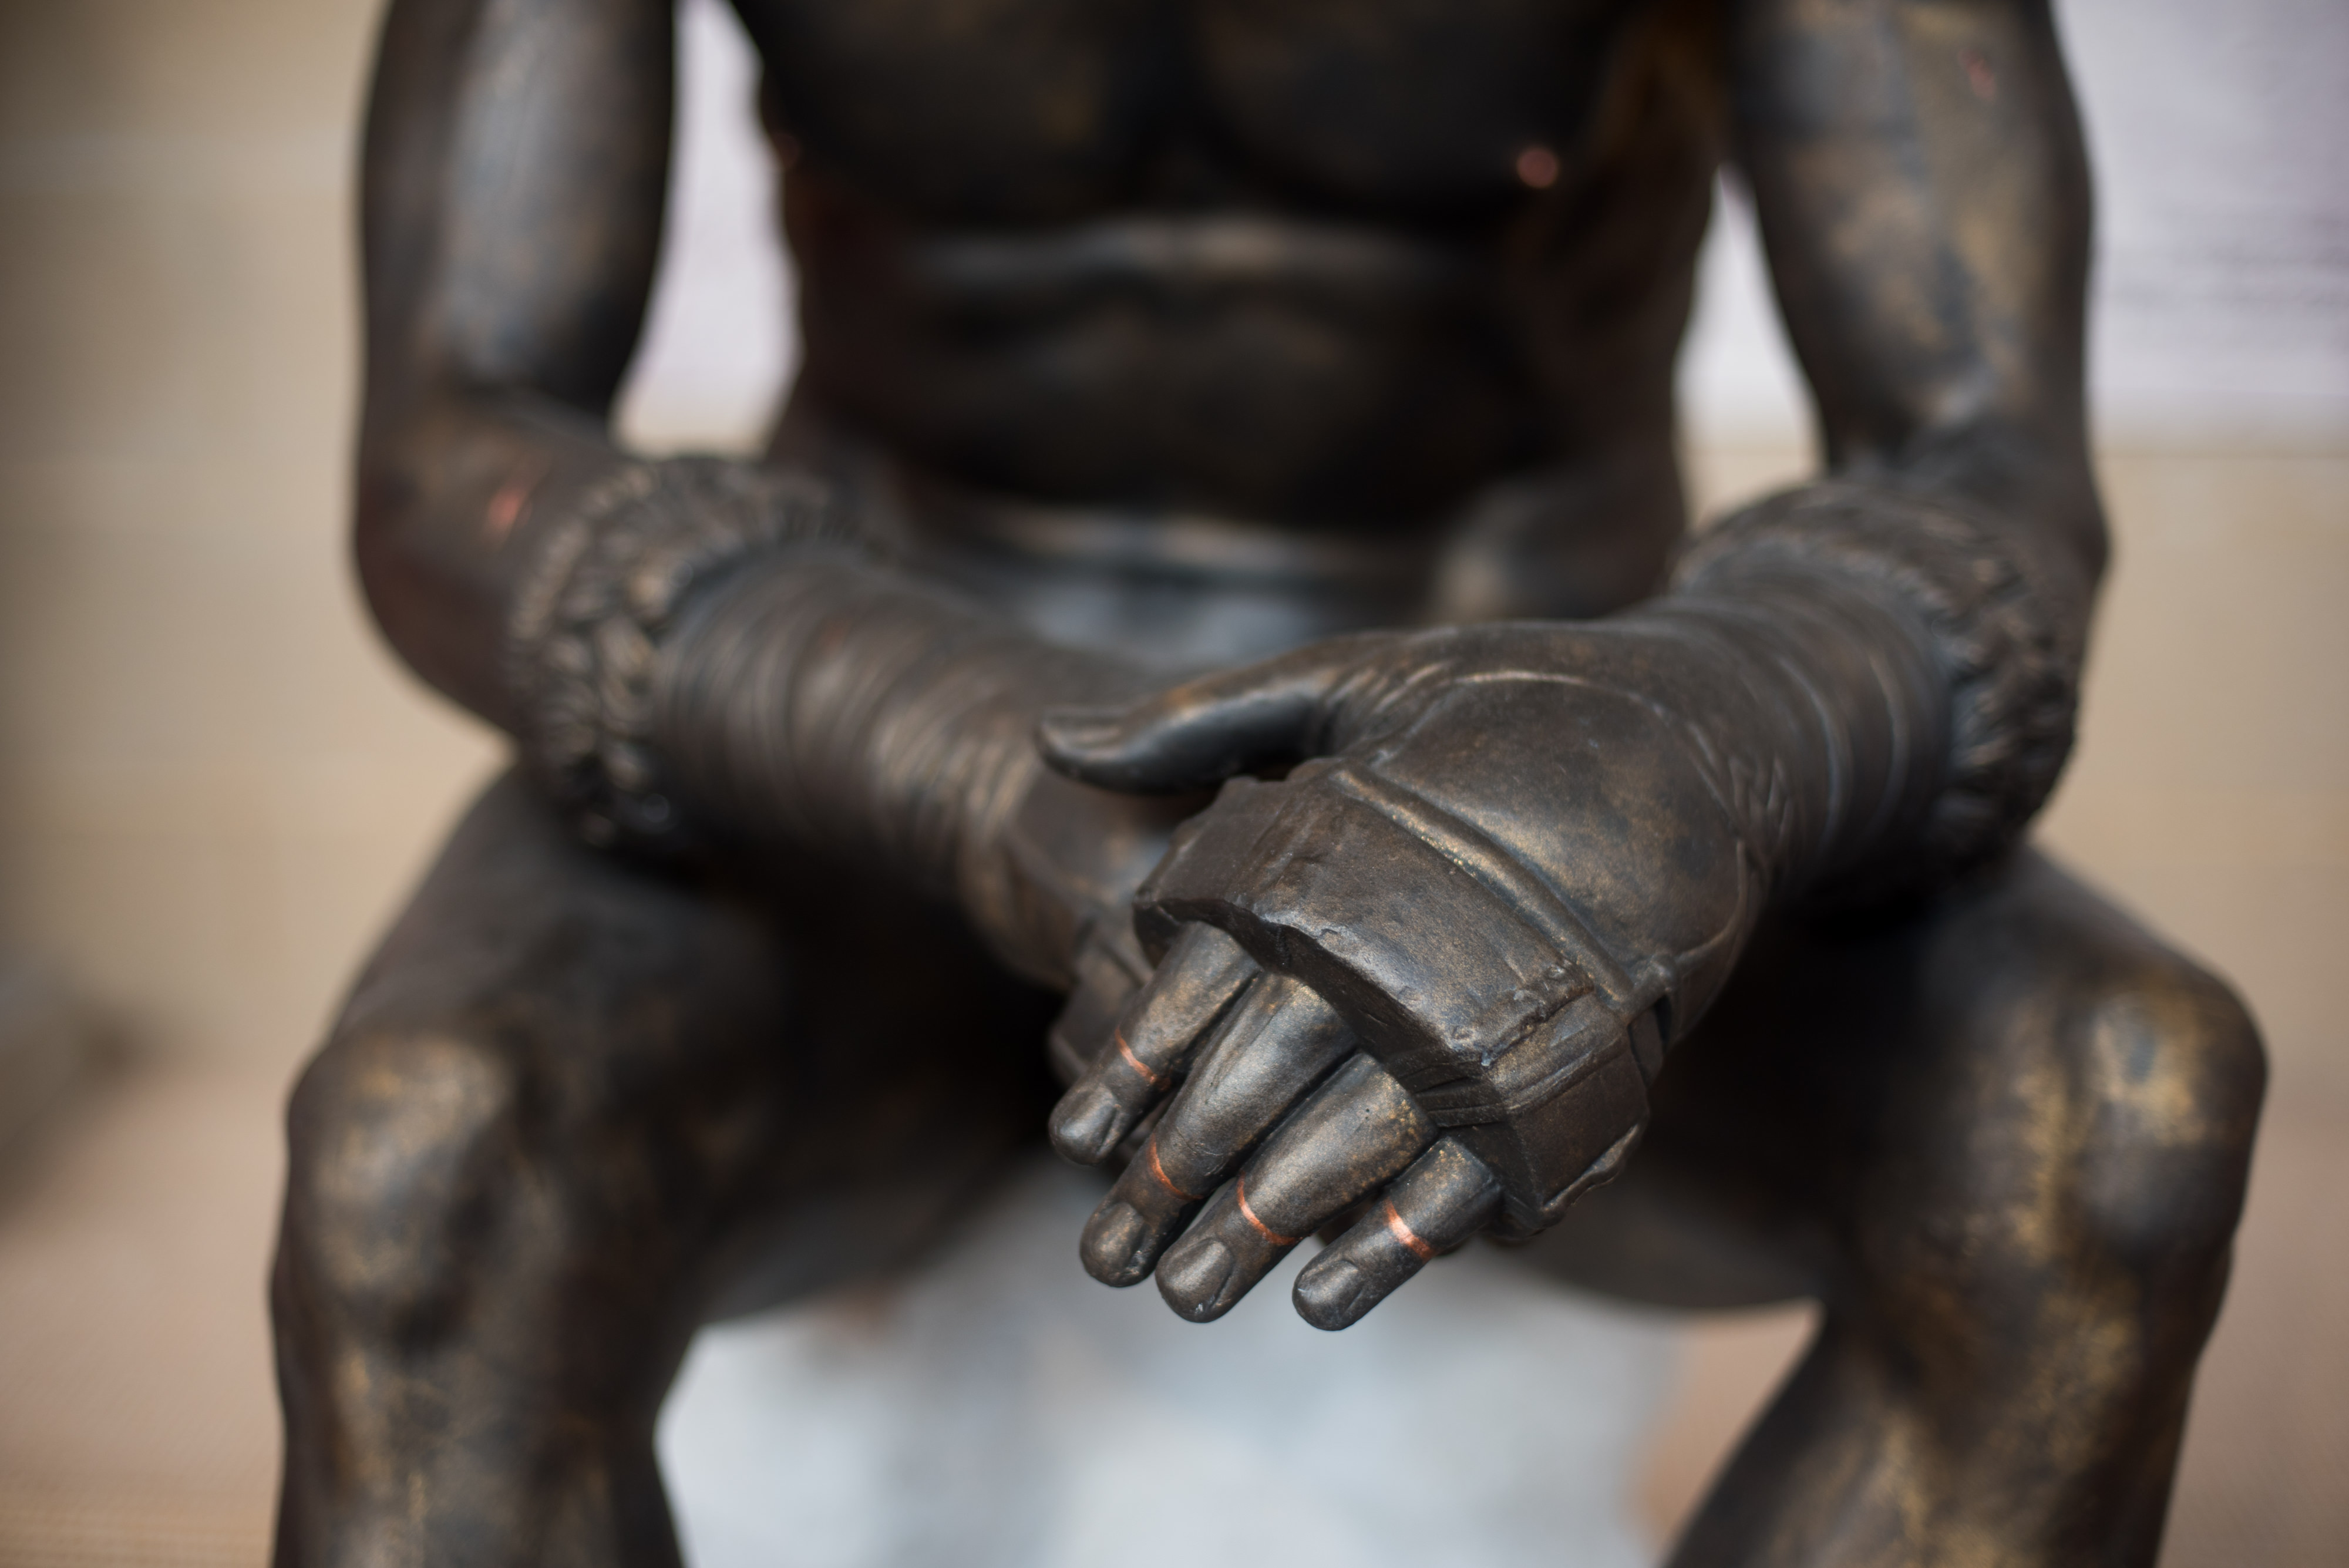 close up of Boxer's hands wearing fur-lined boxing gloves with metal knuckle guards